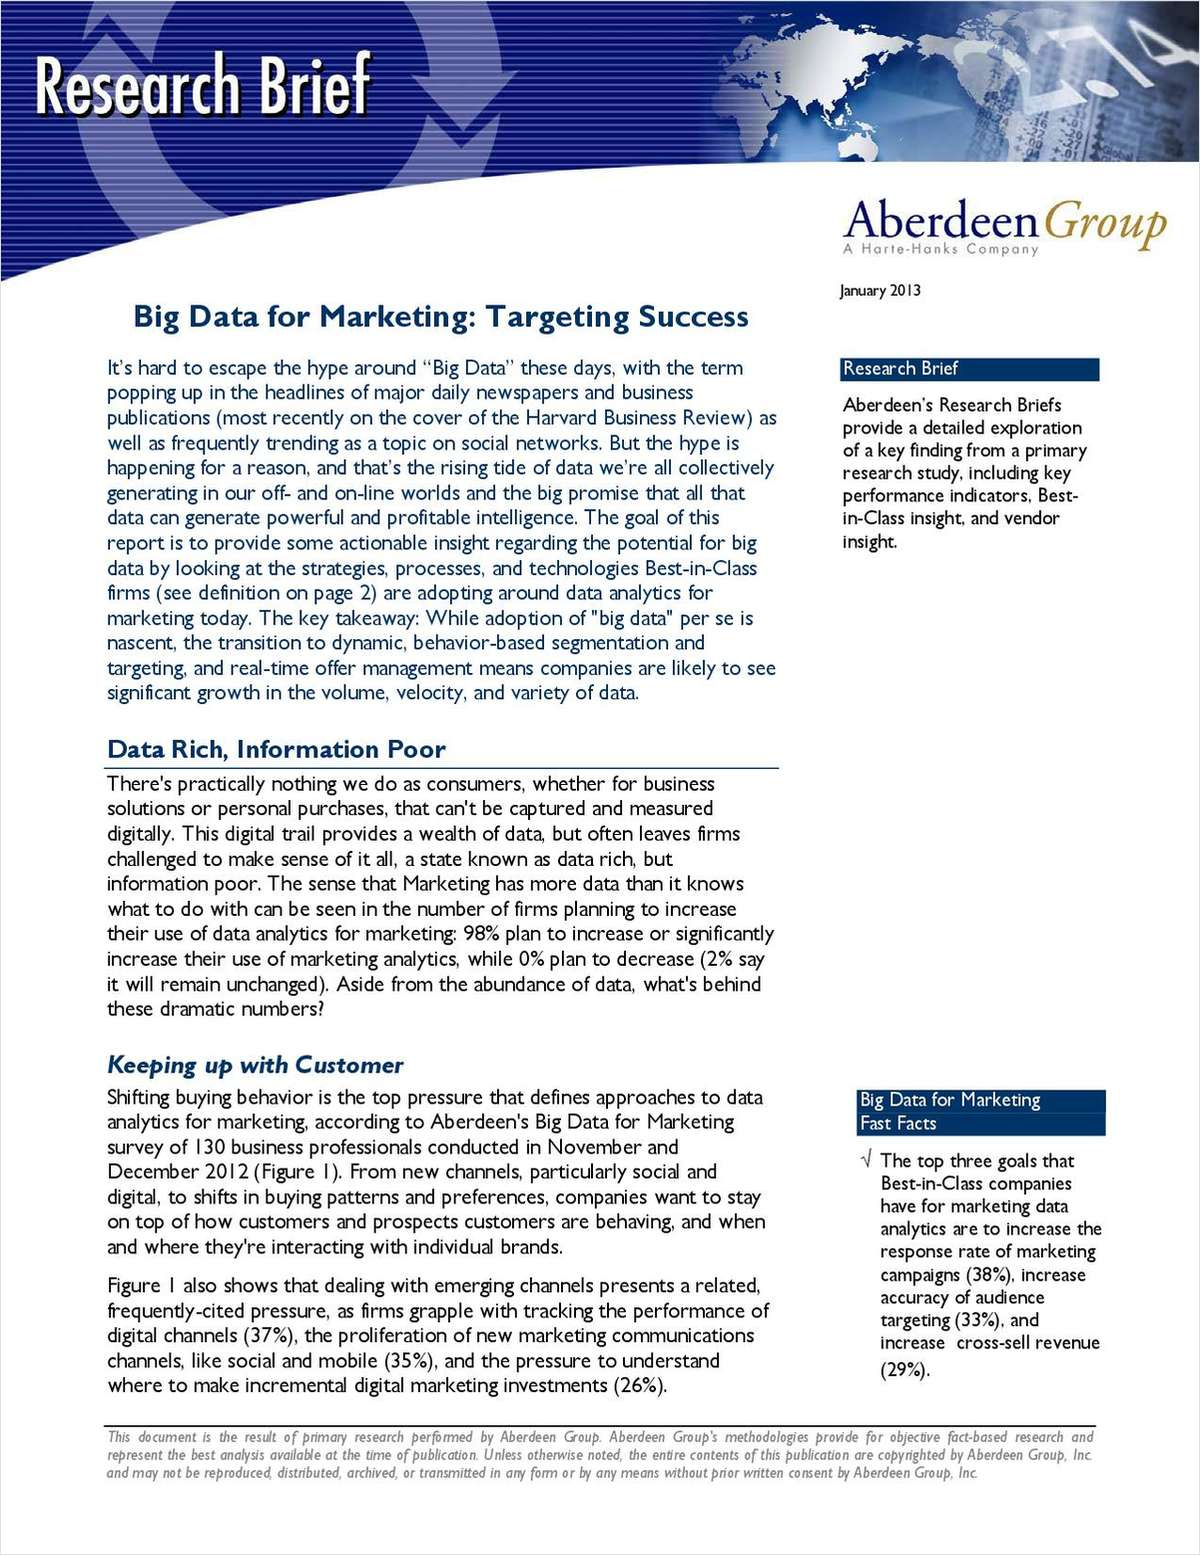 Aberdeen Research Brief: Big Data for Marketing - Targeting Success